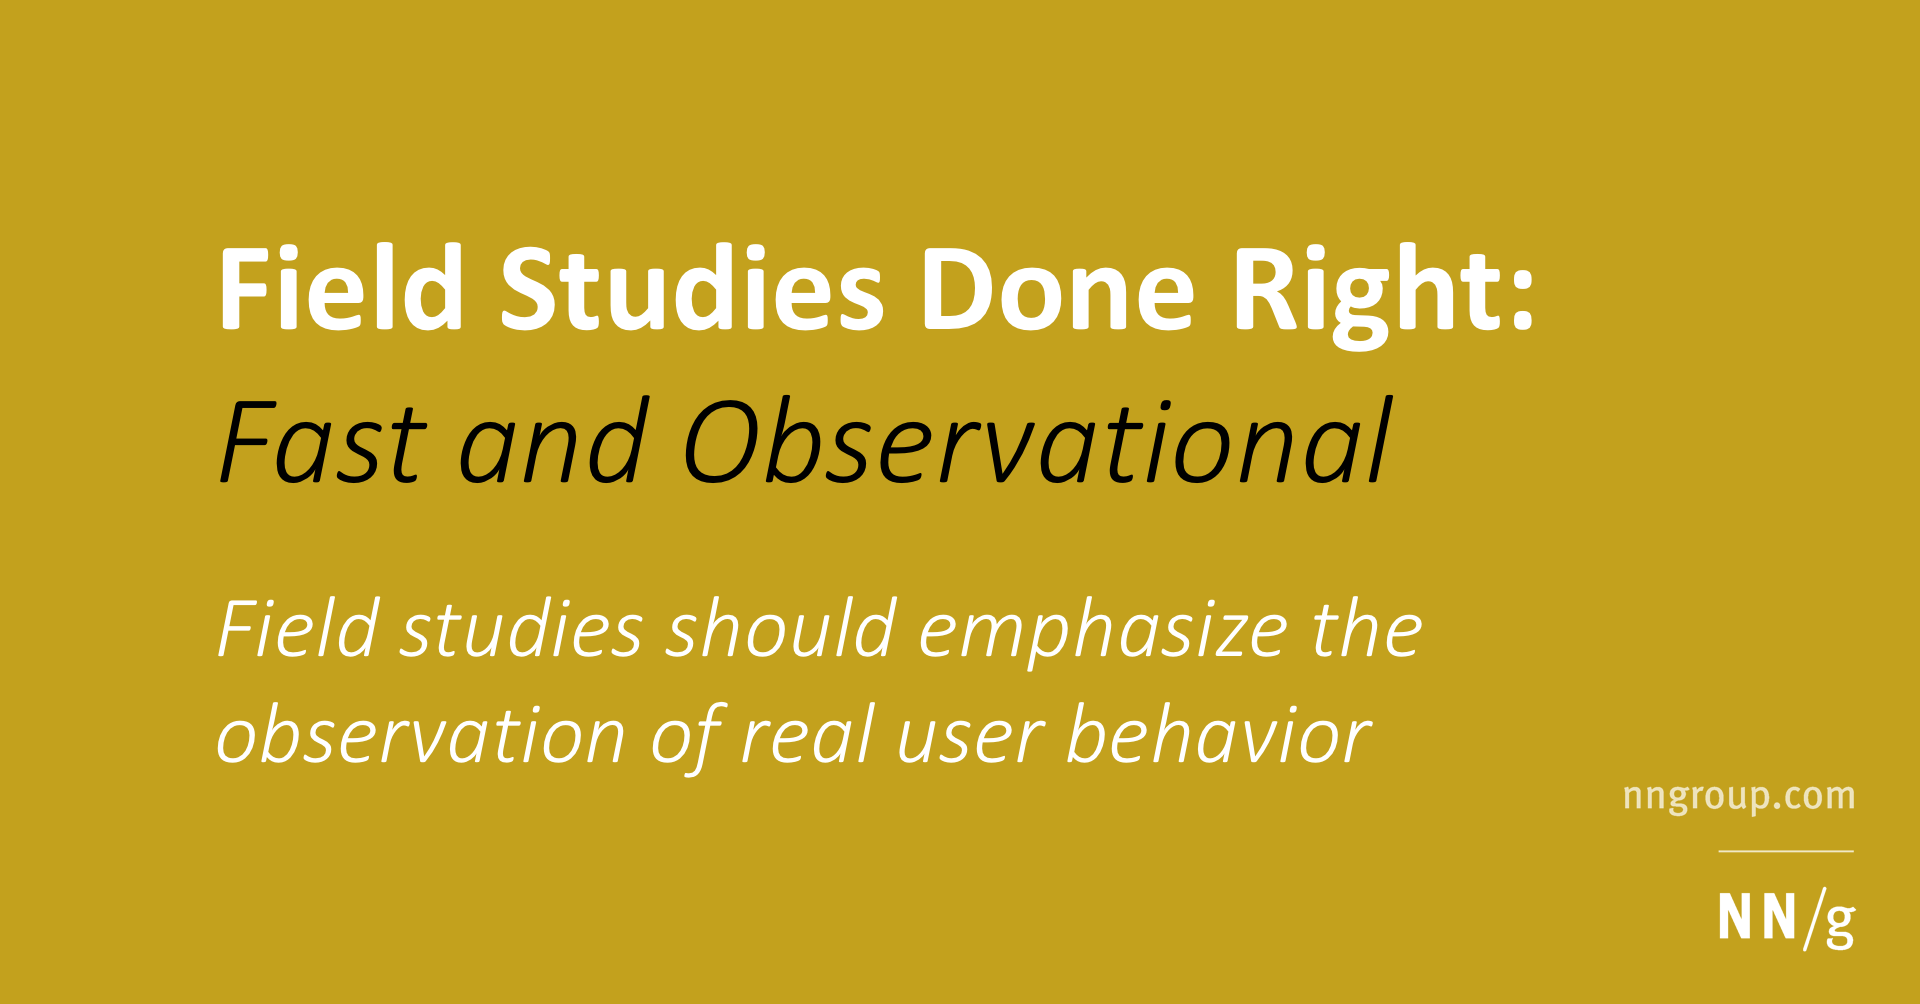 Field Studies Done Right: Fast and Observational